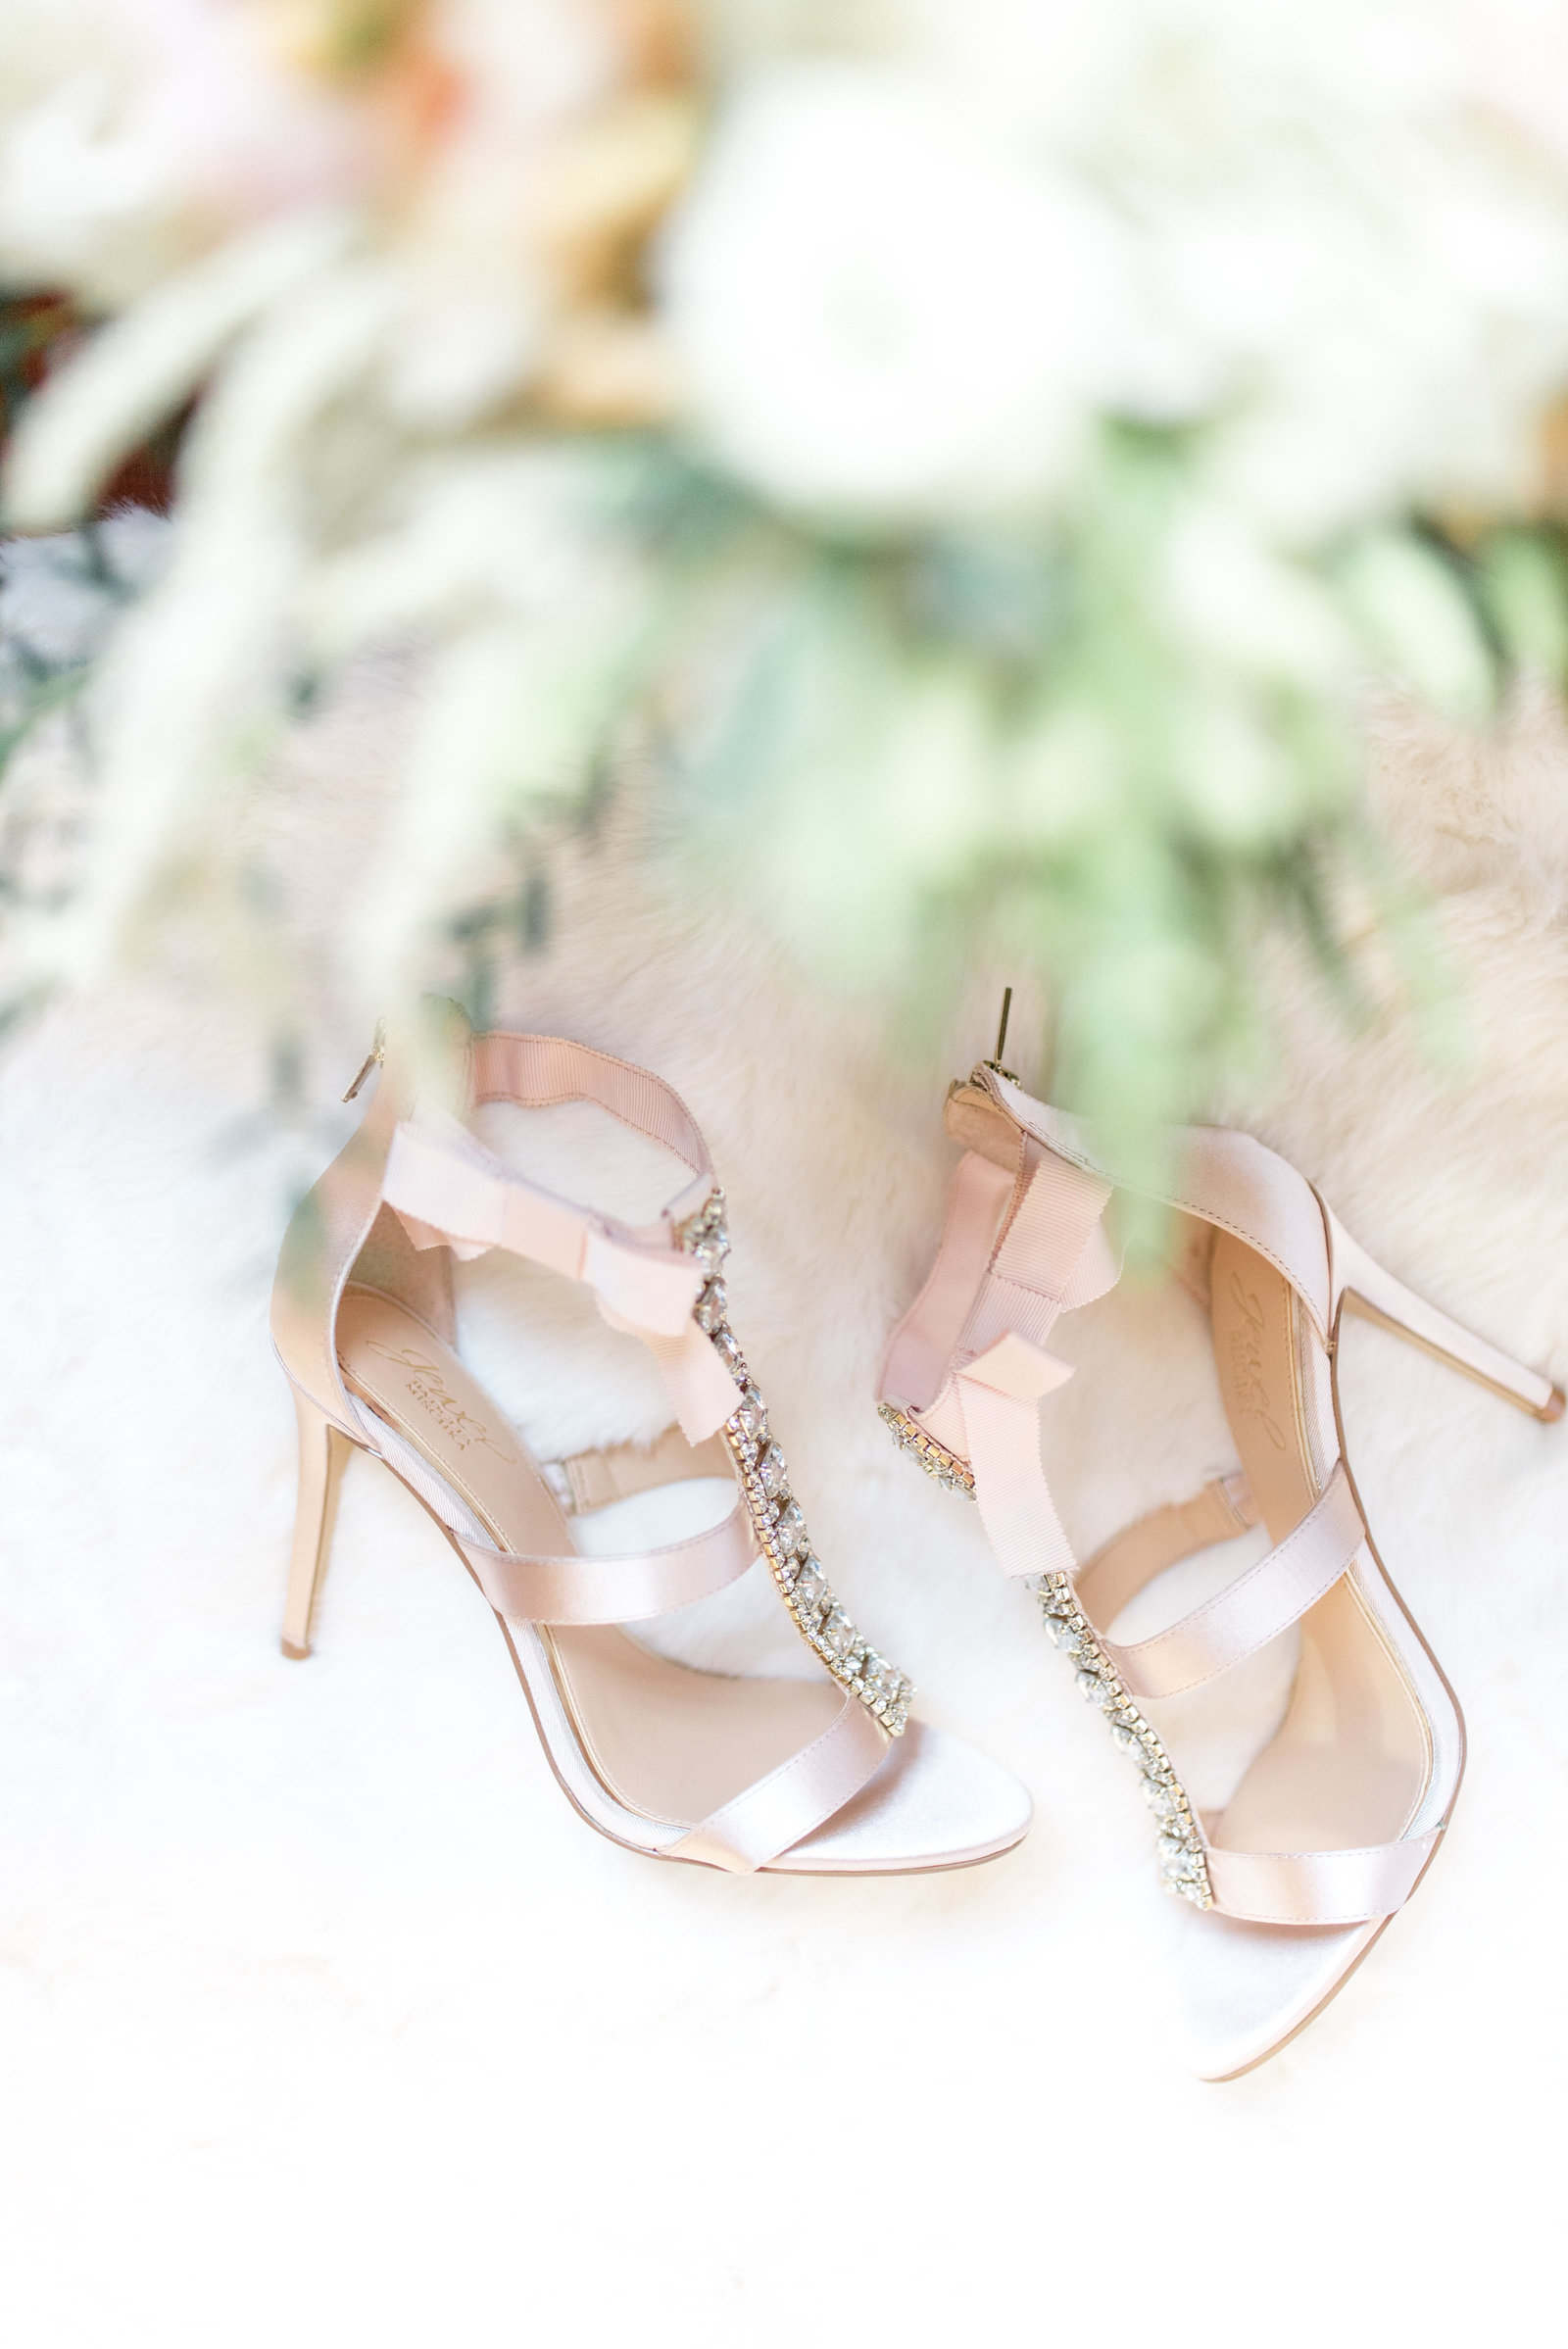 Badgley Mischka Blush Heels